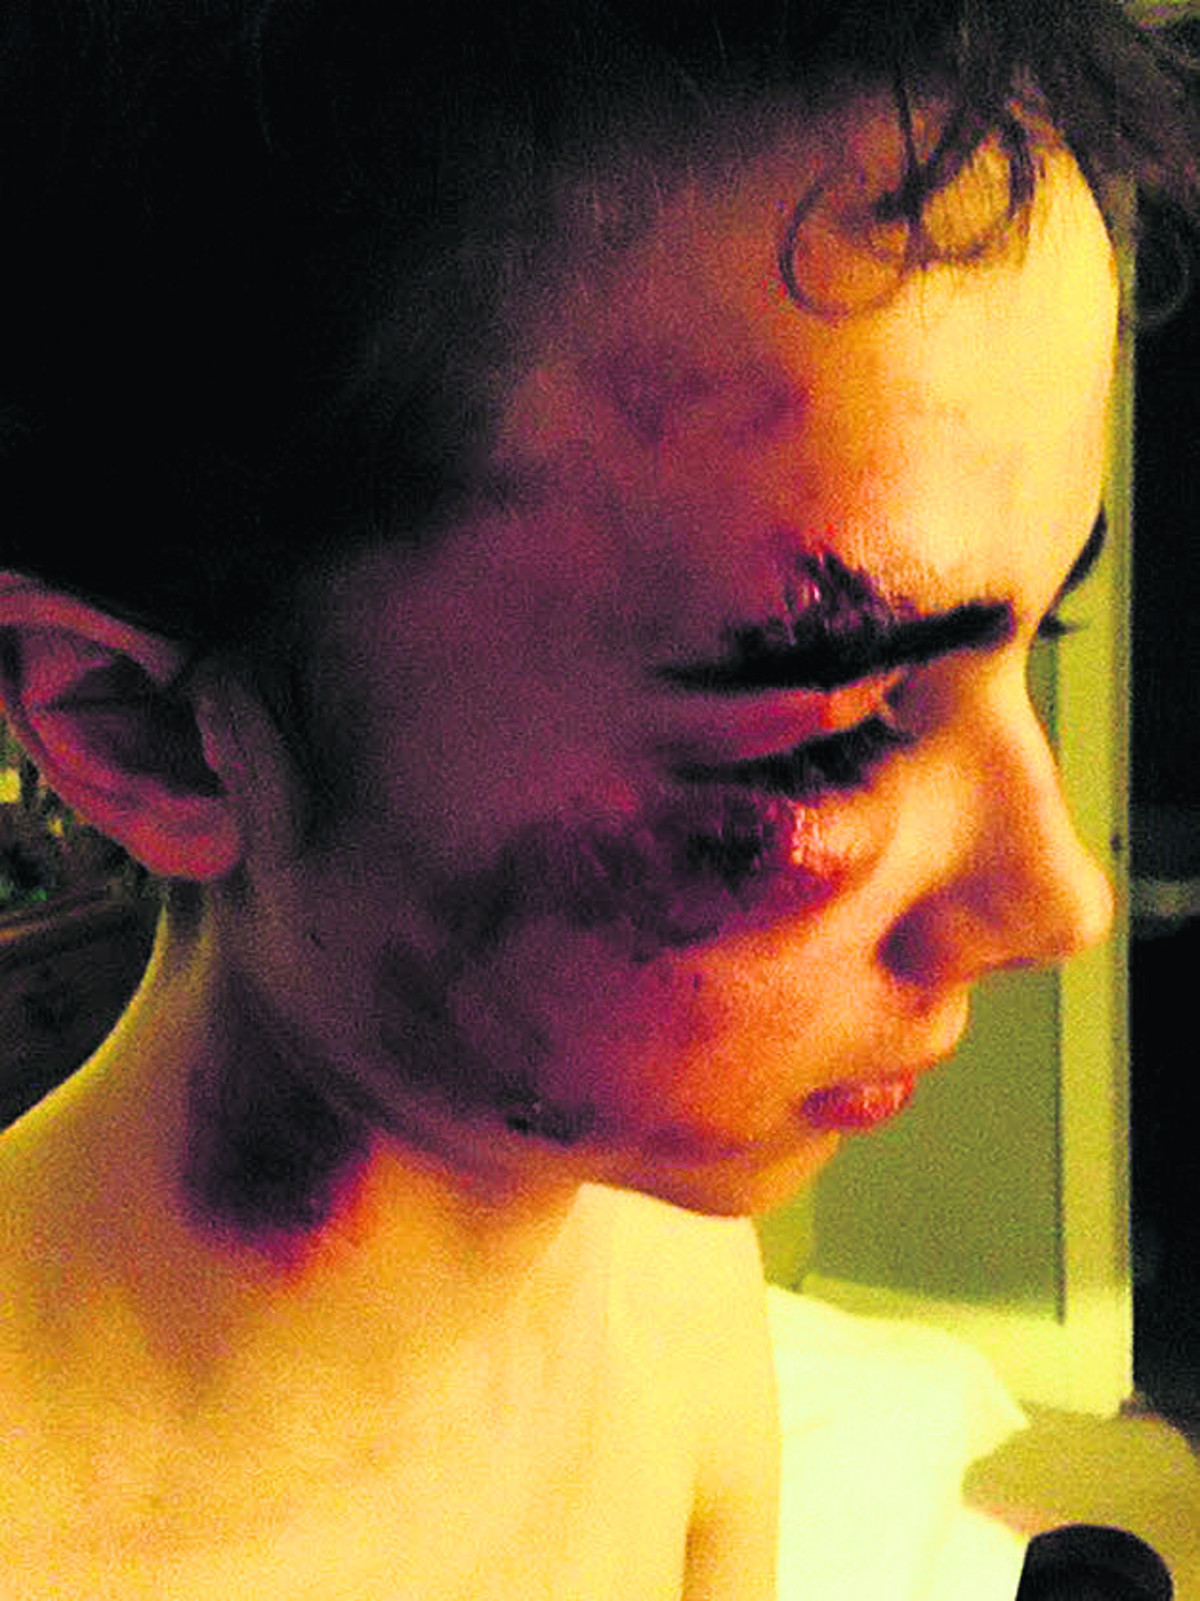 Malmesbury teenager battered and bruised after pothole incident